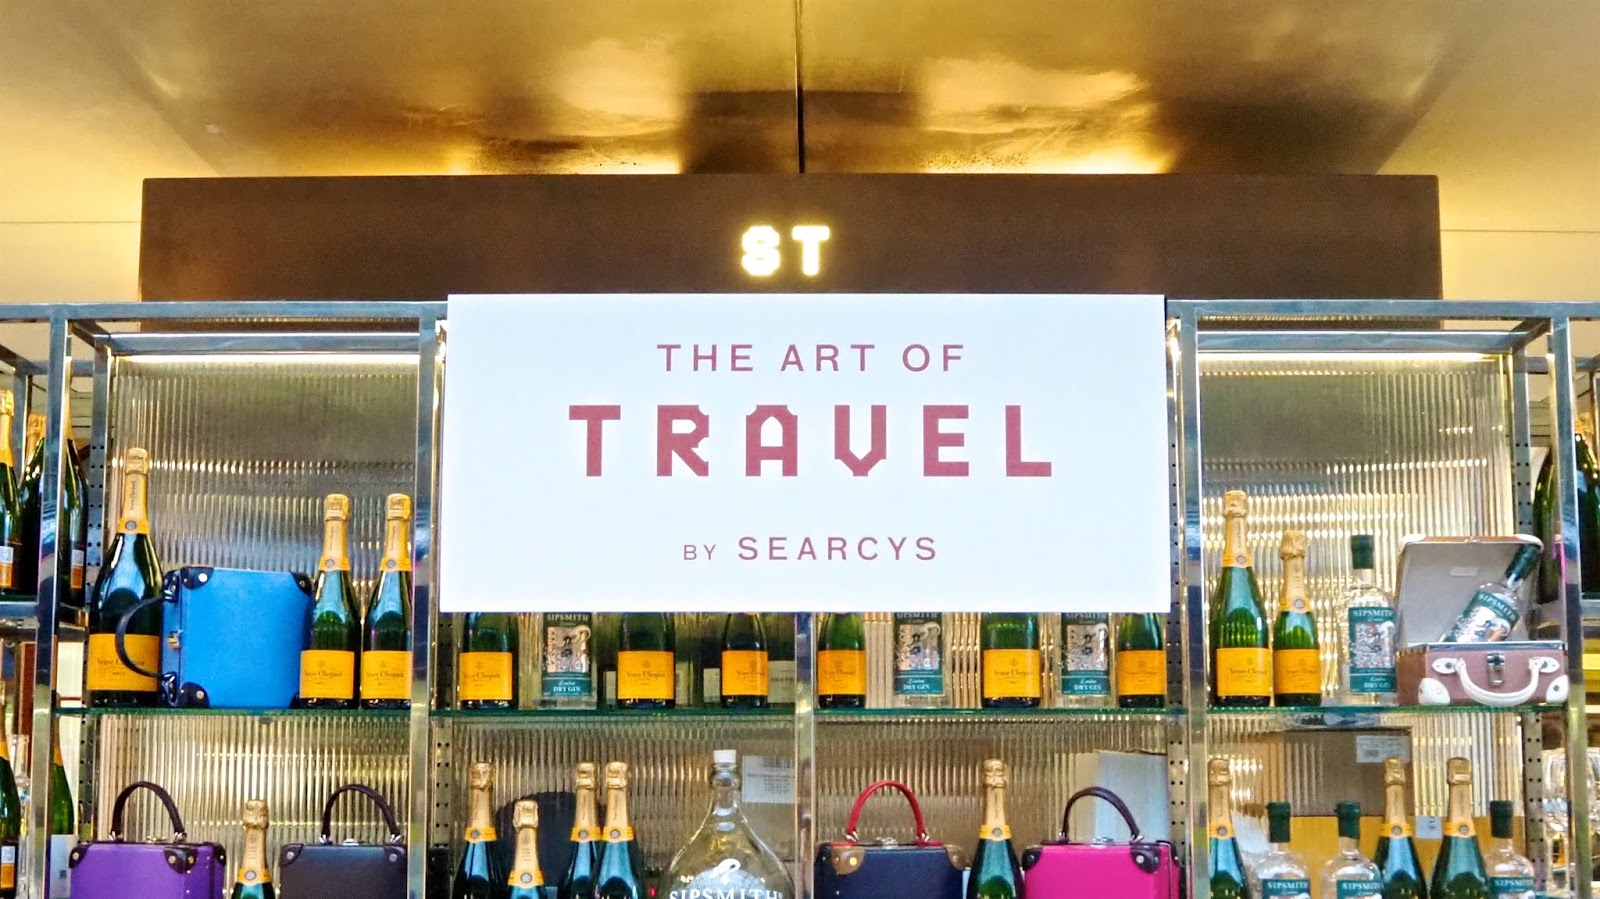 The Art of Travel - a New Pop-up at Searcy's St. Pancras